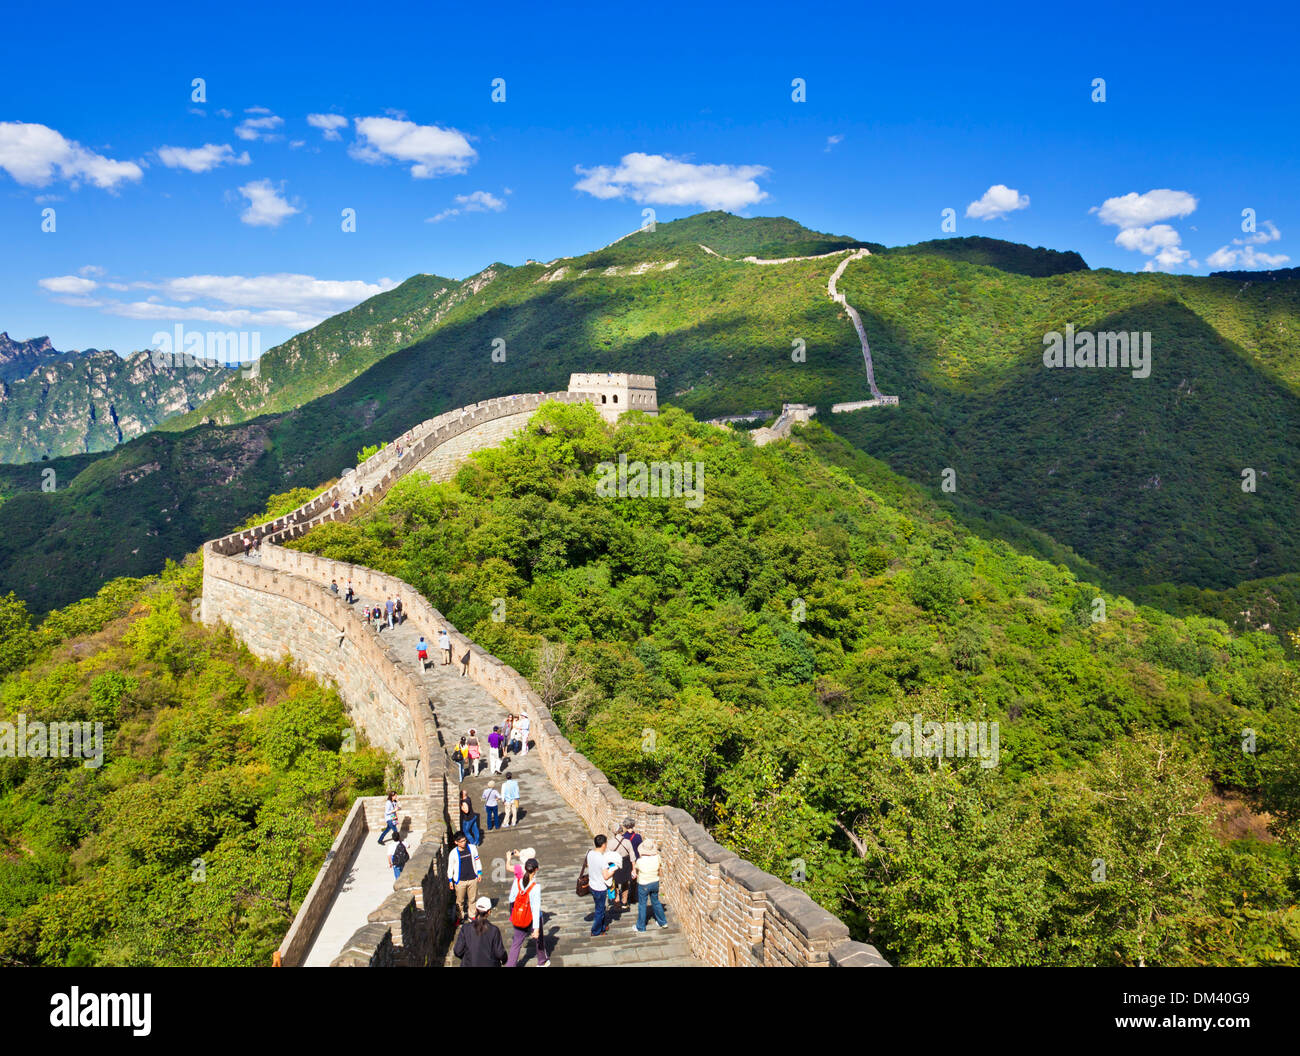 Tourists visiting the Great Wall of China, UNESCO World Heritage Site, Mutianyu, Beijing District, China, Asia - Stock Image